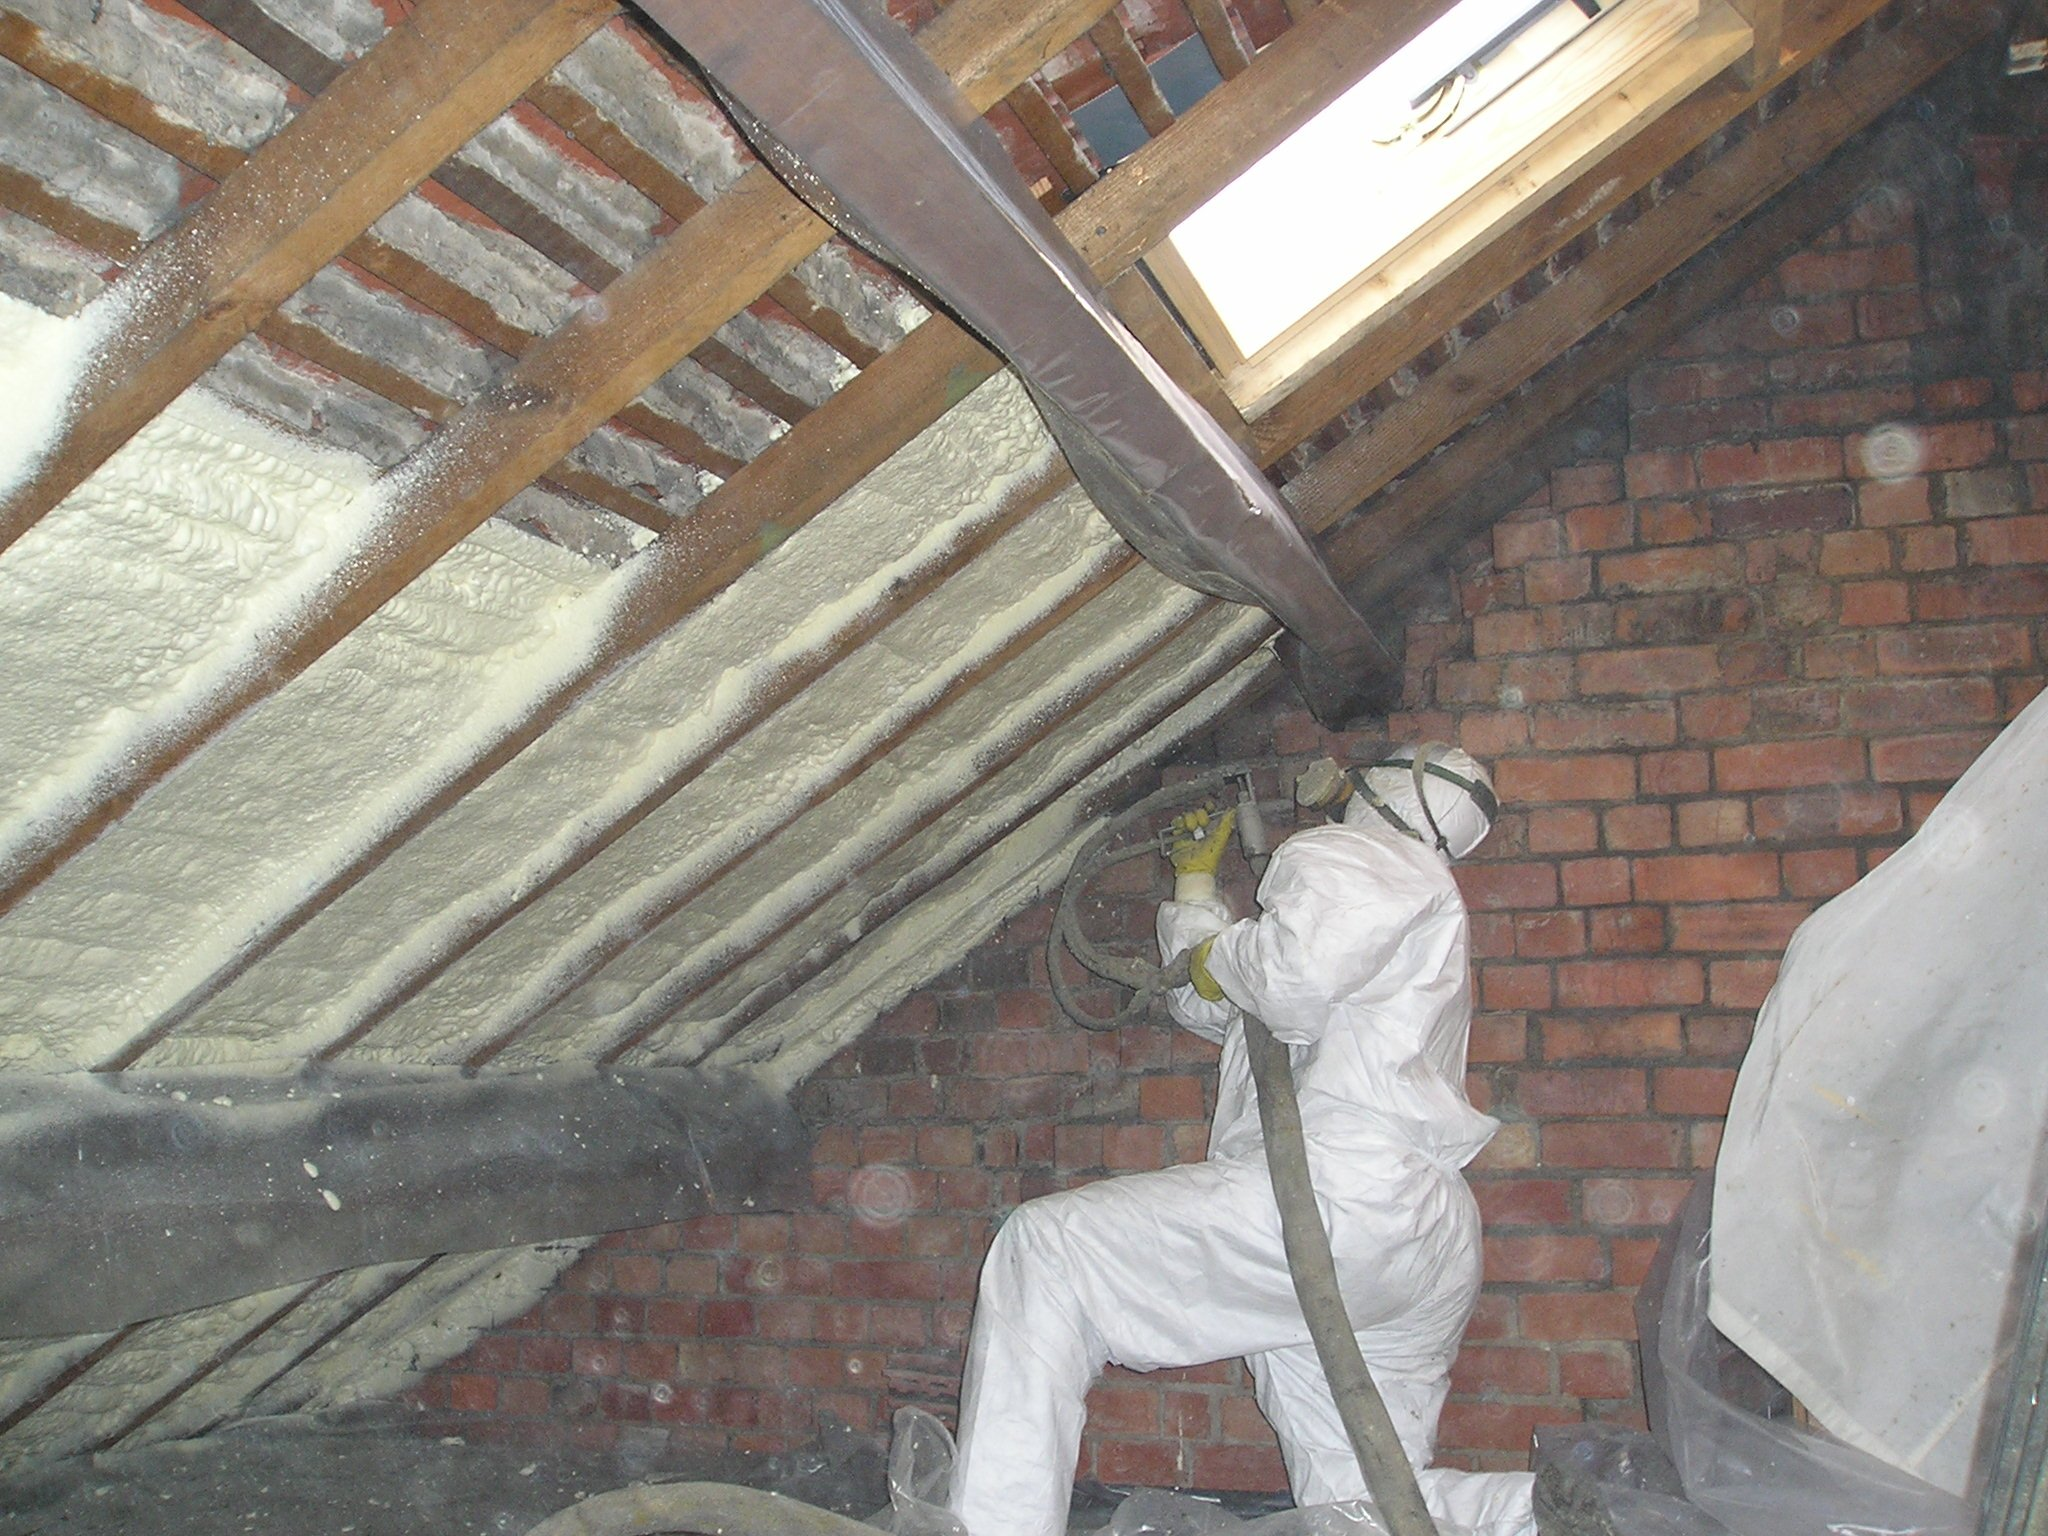 Coibentazione Sottotetto Calpestabile Retrofit Insulation Spray Tight Spray Foam Insulation